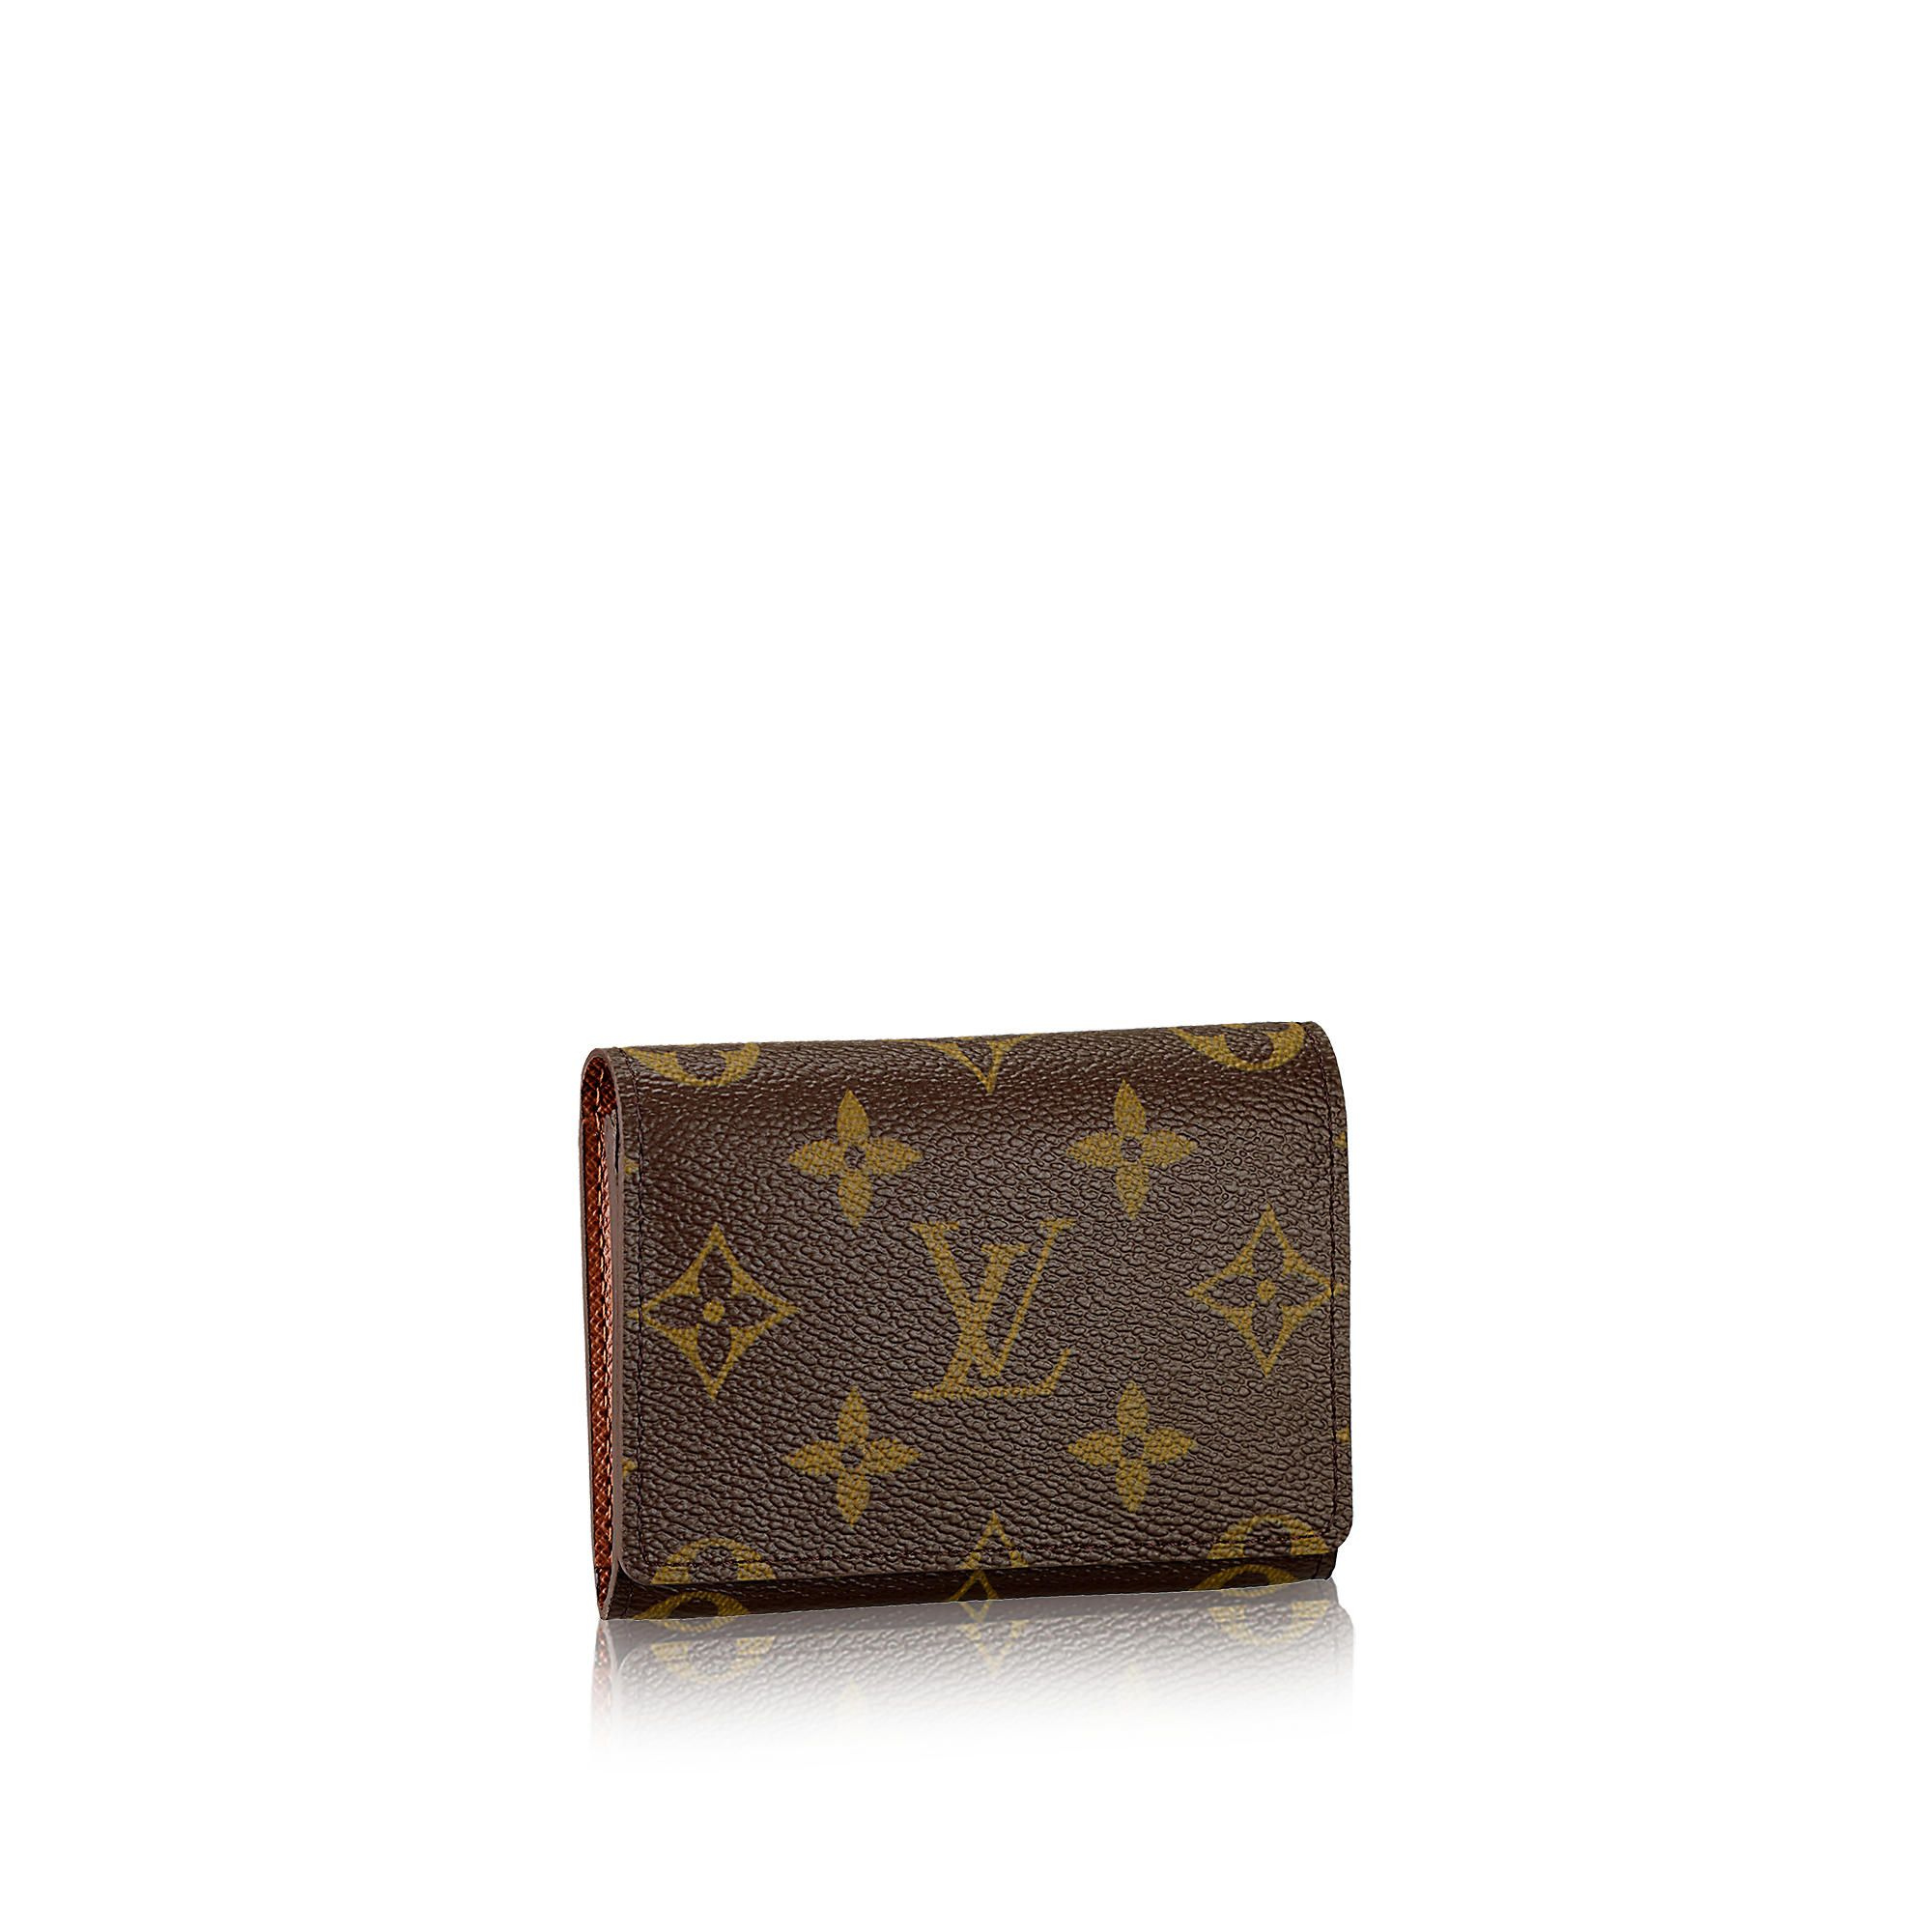 Discover Louis Vuitton Business Card Holder via Louis Vuitton ...